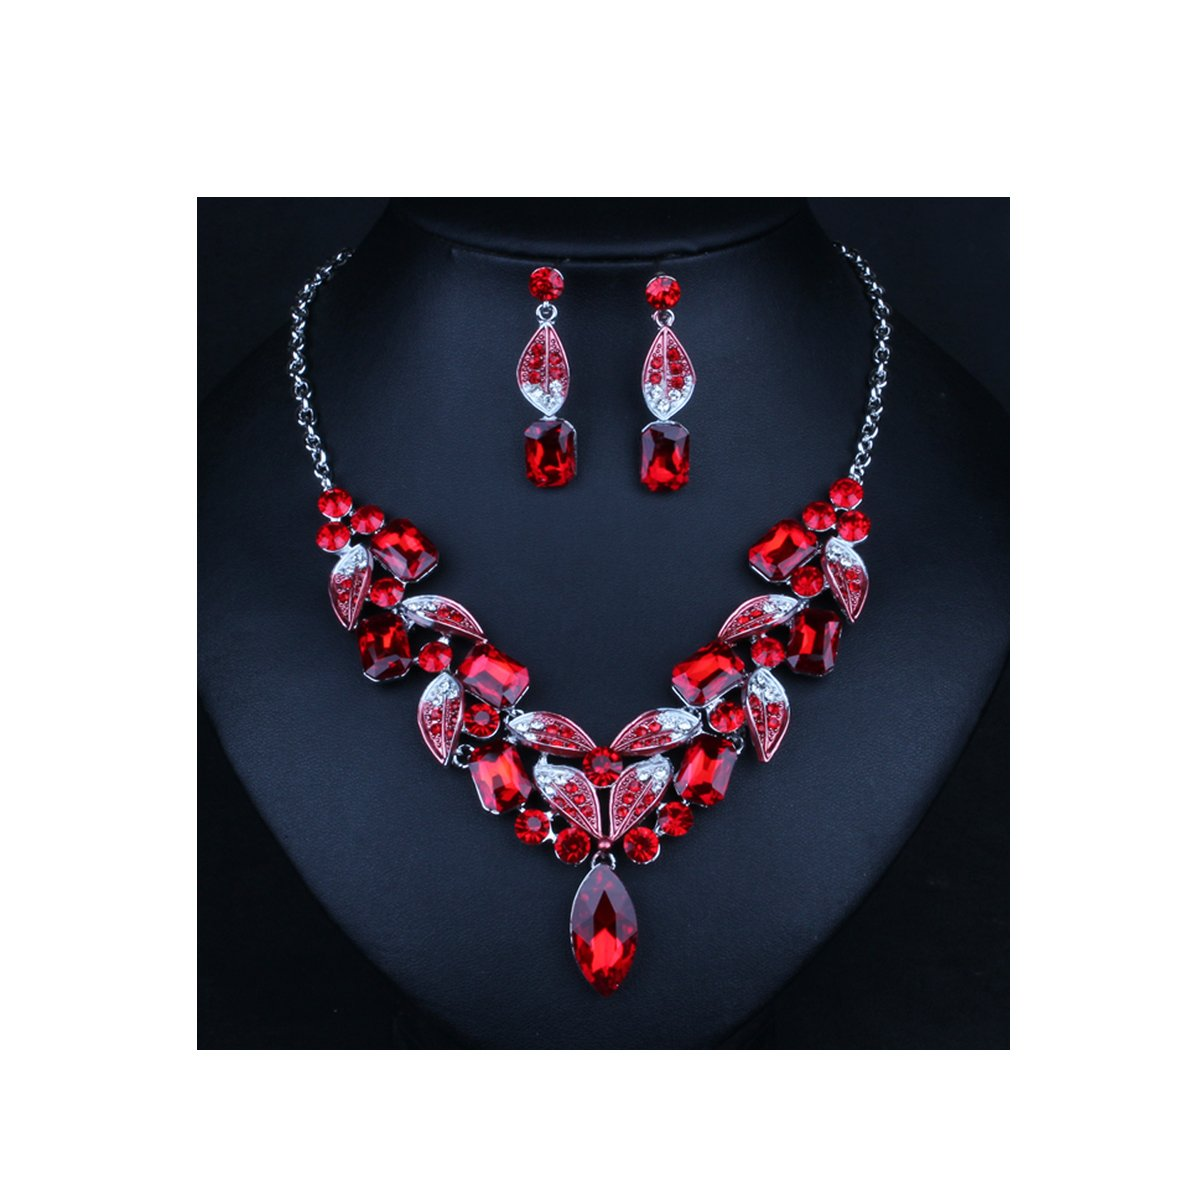 ENUUNO Costume jewelry Crystal Choker Pendant Statement Chain Charm Necklace and Earrings Sets (Red, alloy)